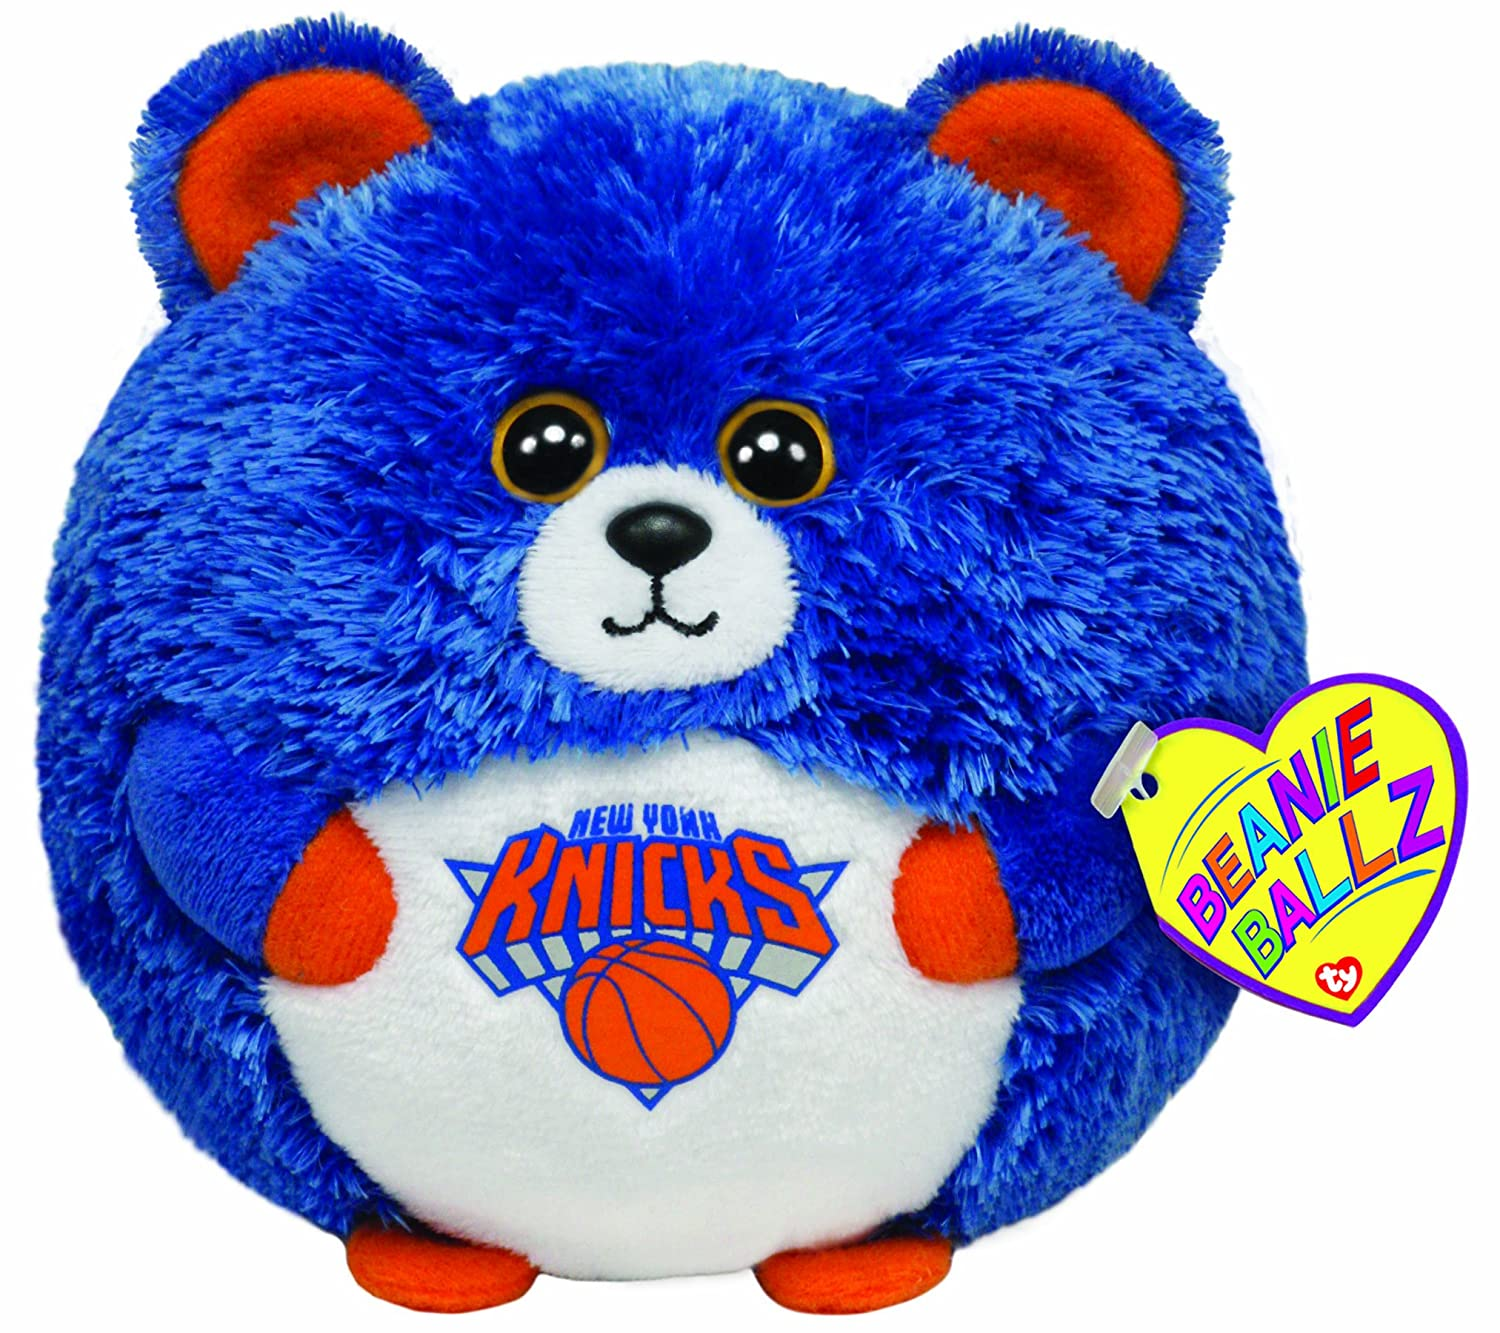 f0b3dea8d7b Buy beanie ballz collection and get free shipping on .